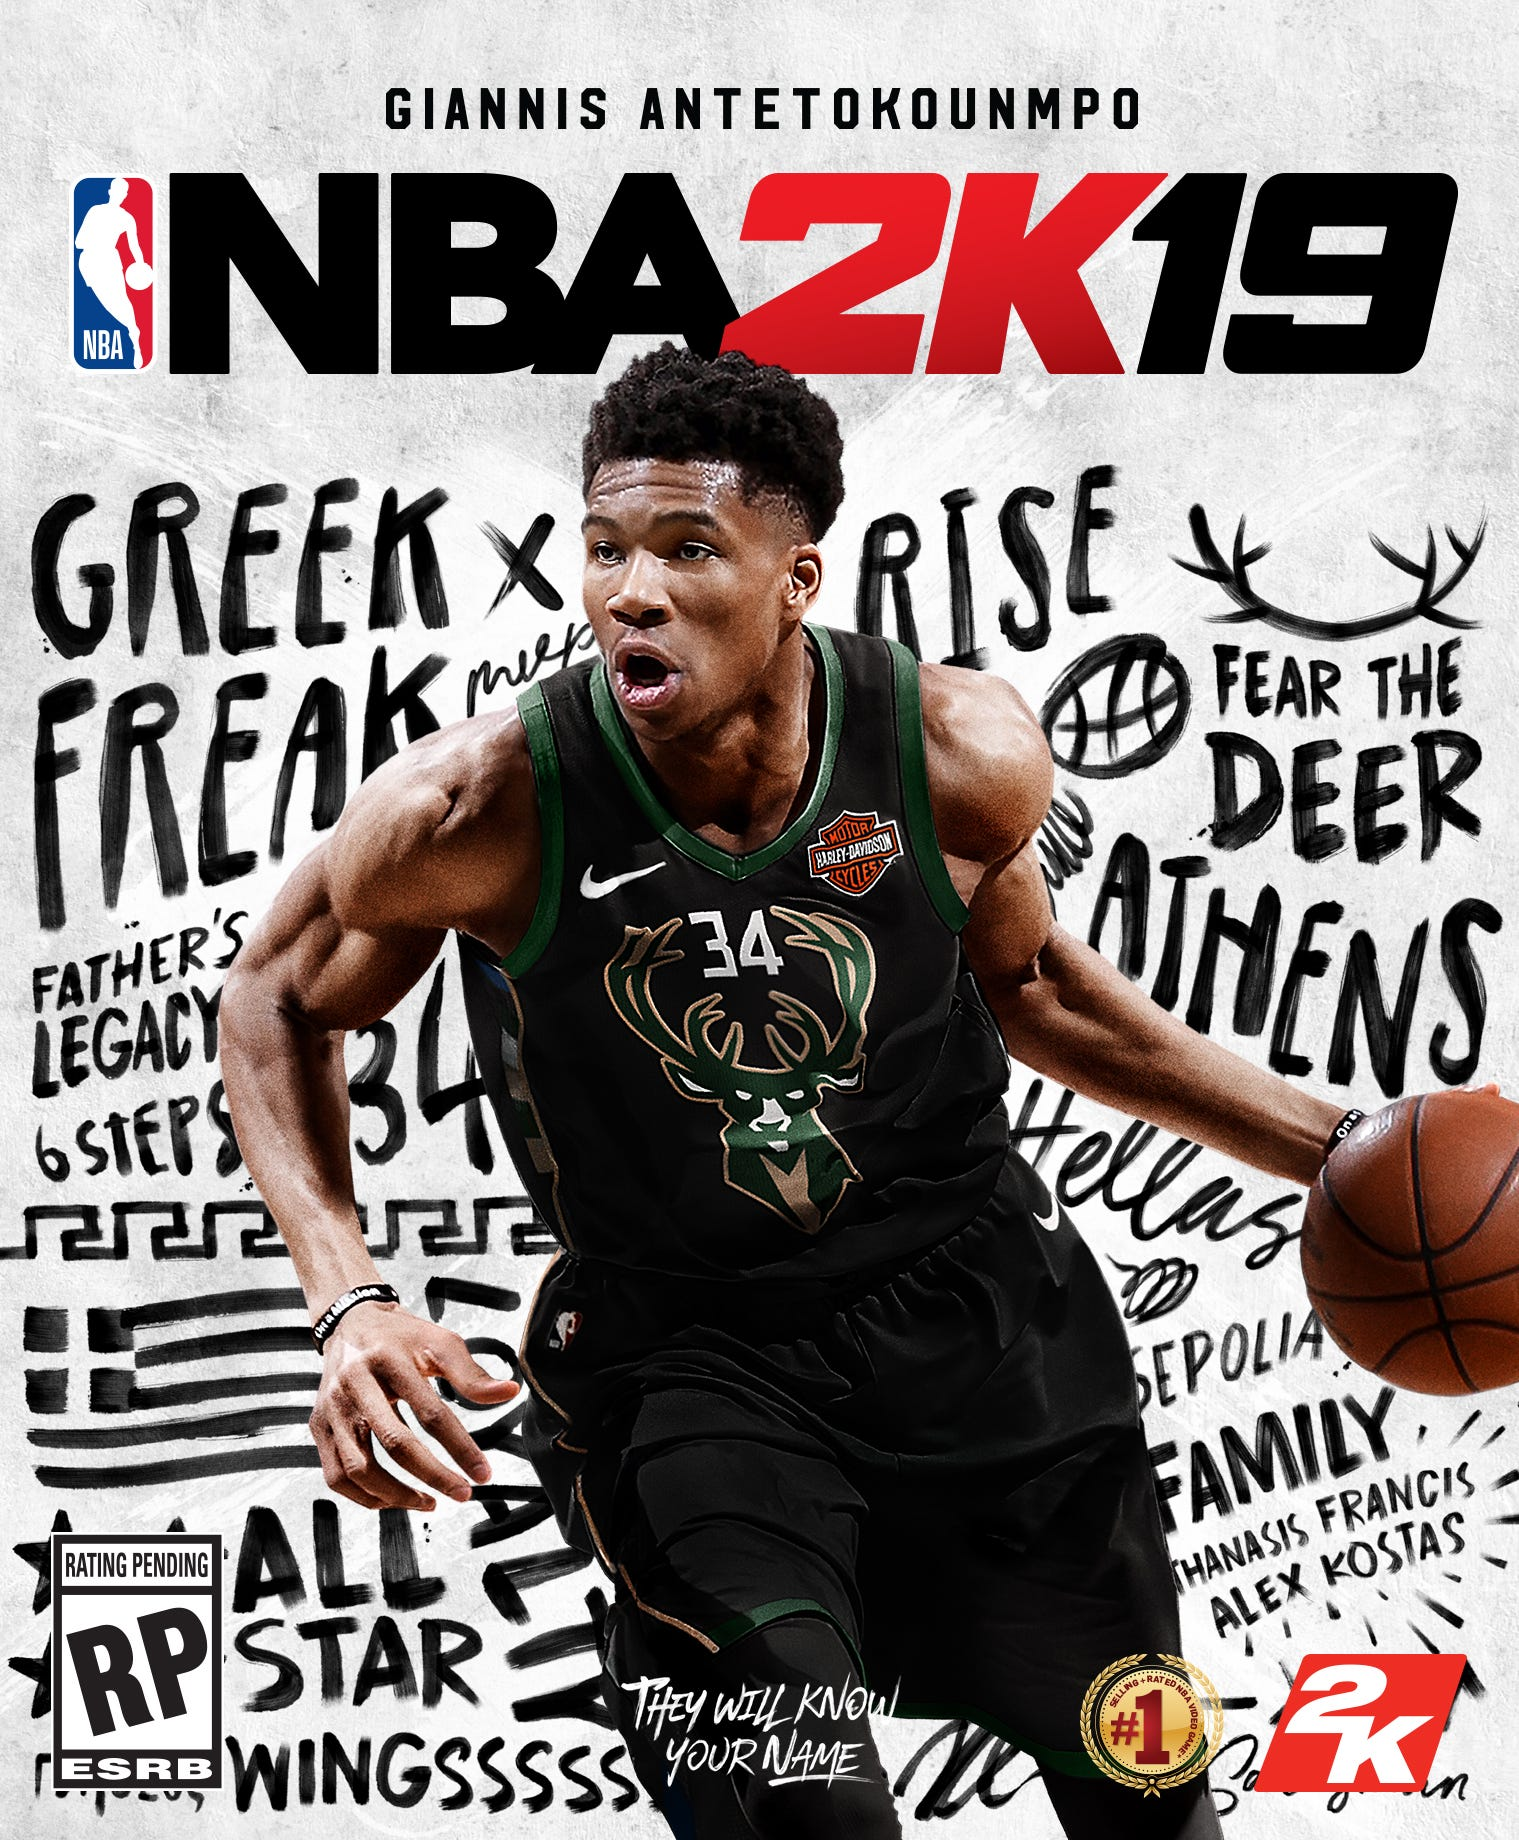 da25143221a8 Fort Wayne Mad Ants  What you need to know about the team featured in NBA  2K19